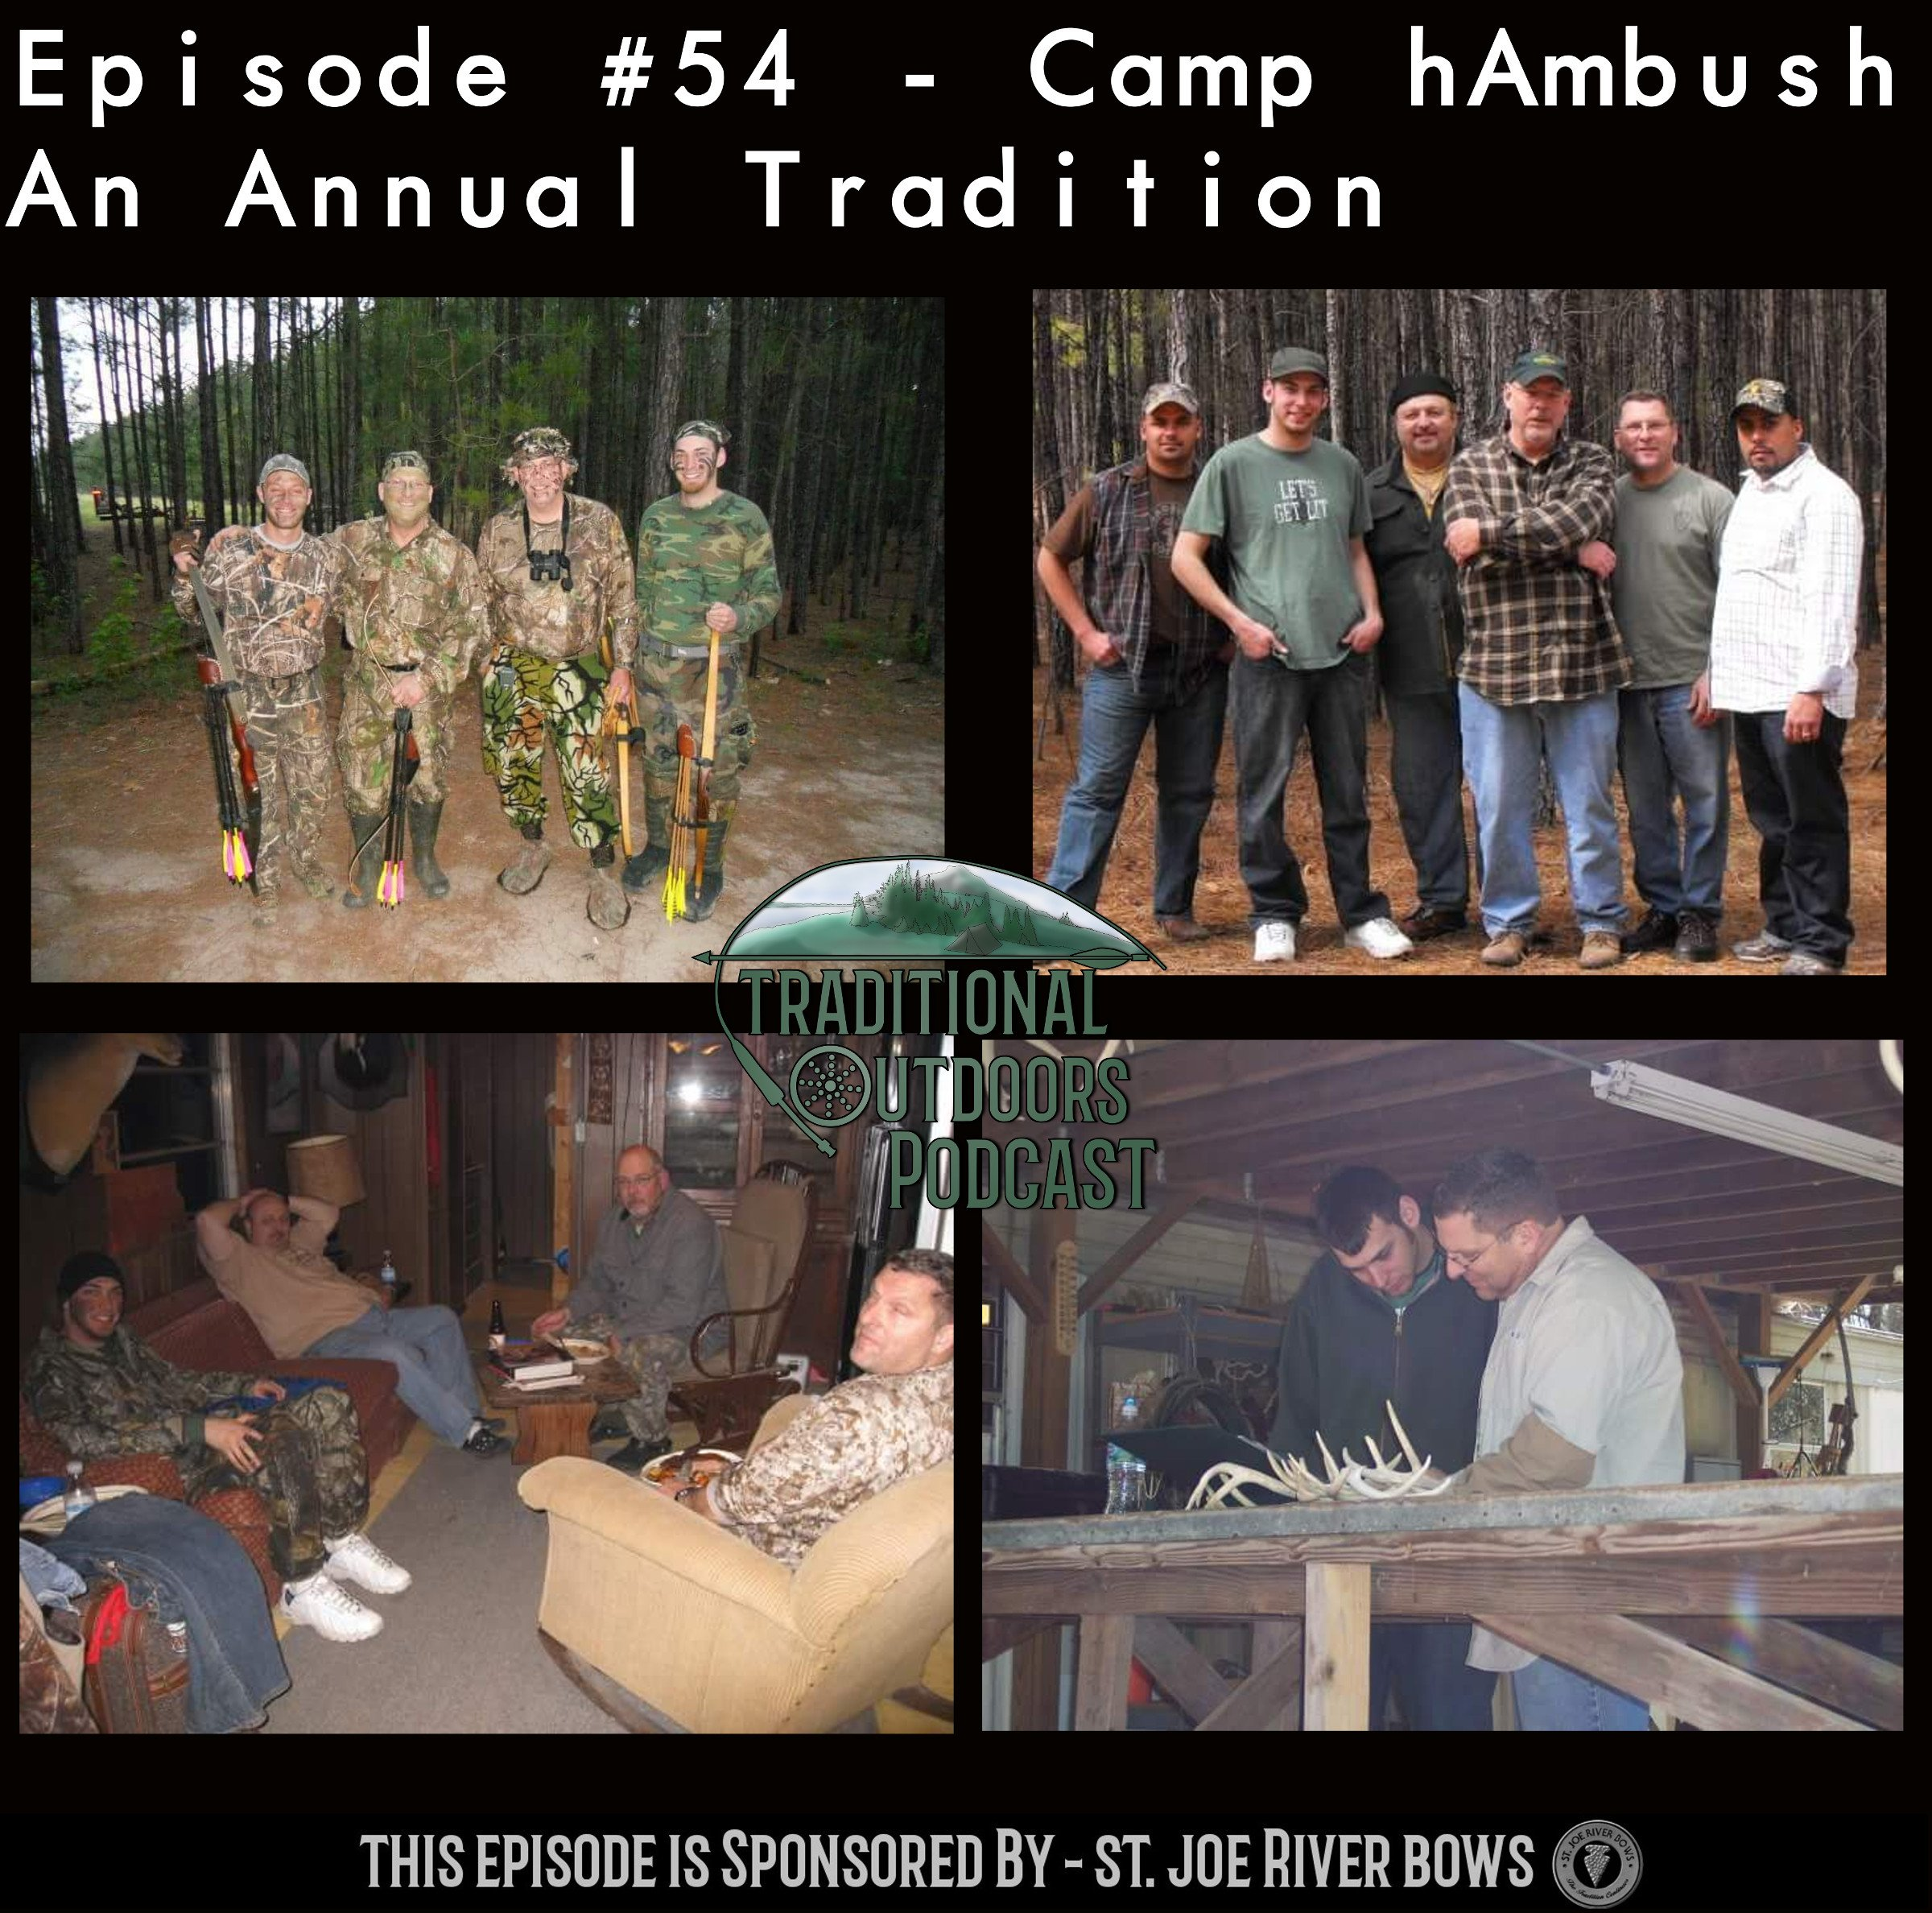 Camp hAmbush